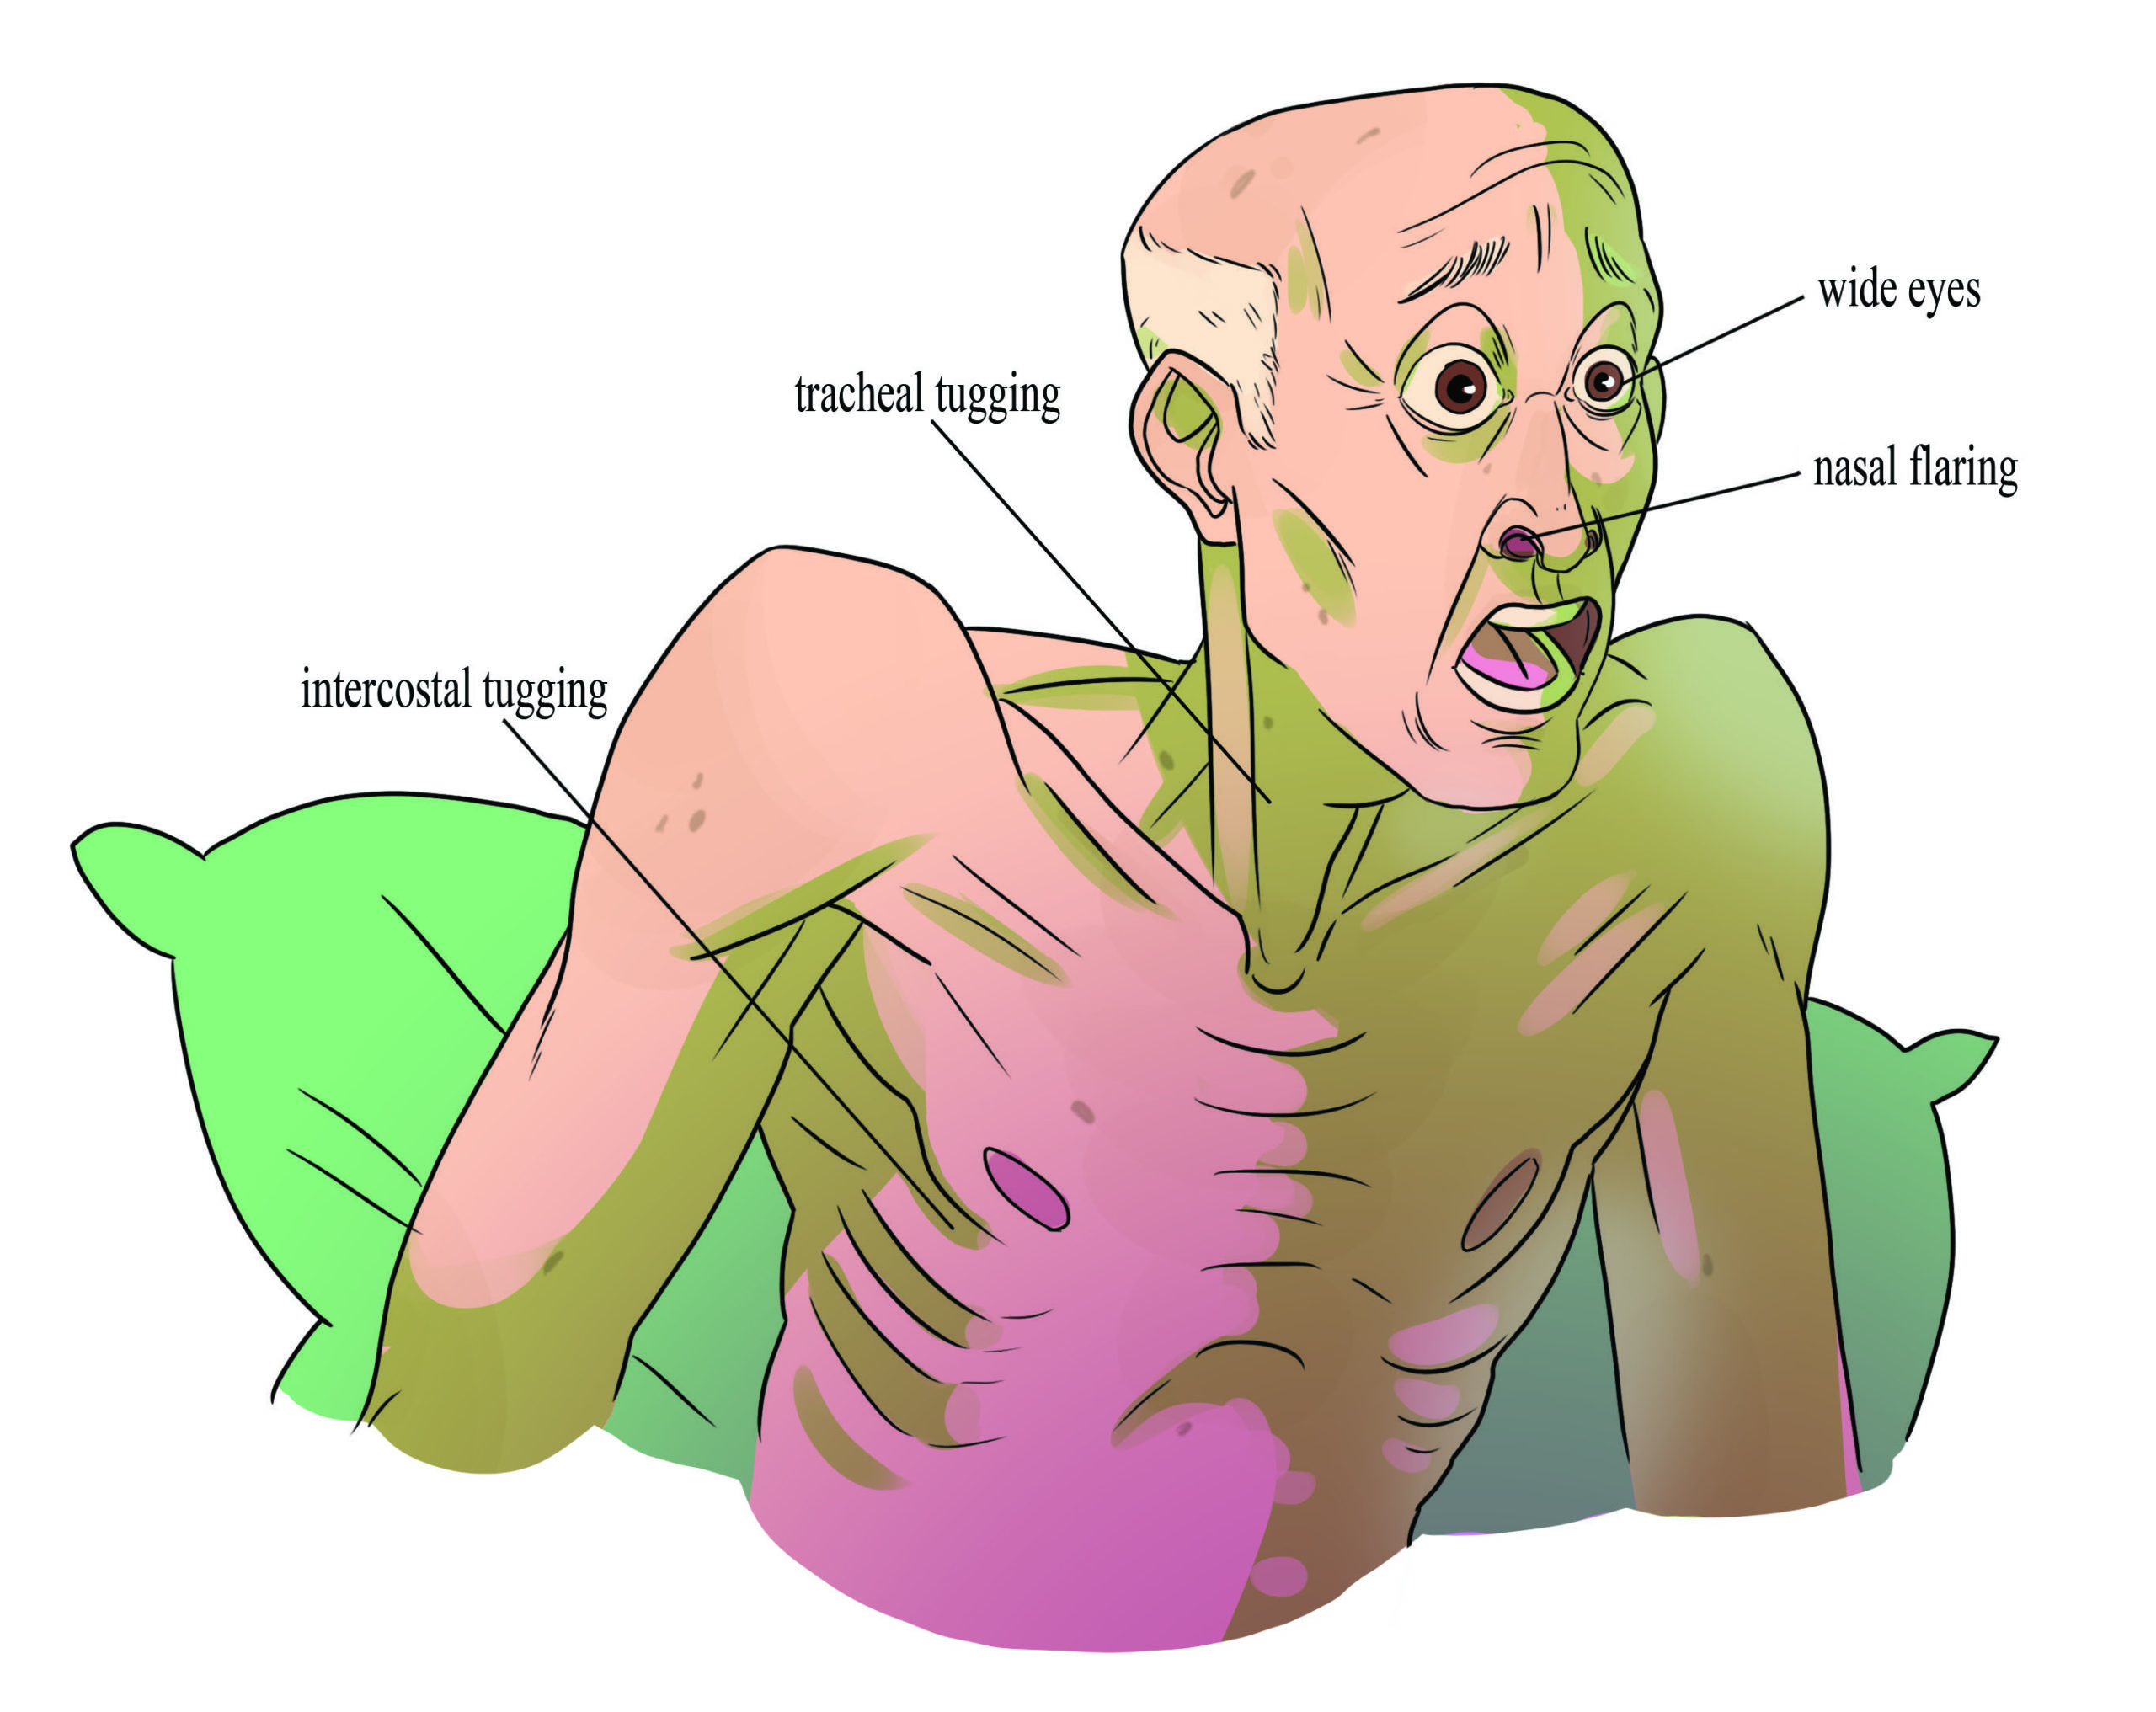 Signs of respiratory distress: Wide eyes, nasal flaring, tracheal tugging, and intercostal tugging.